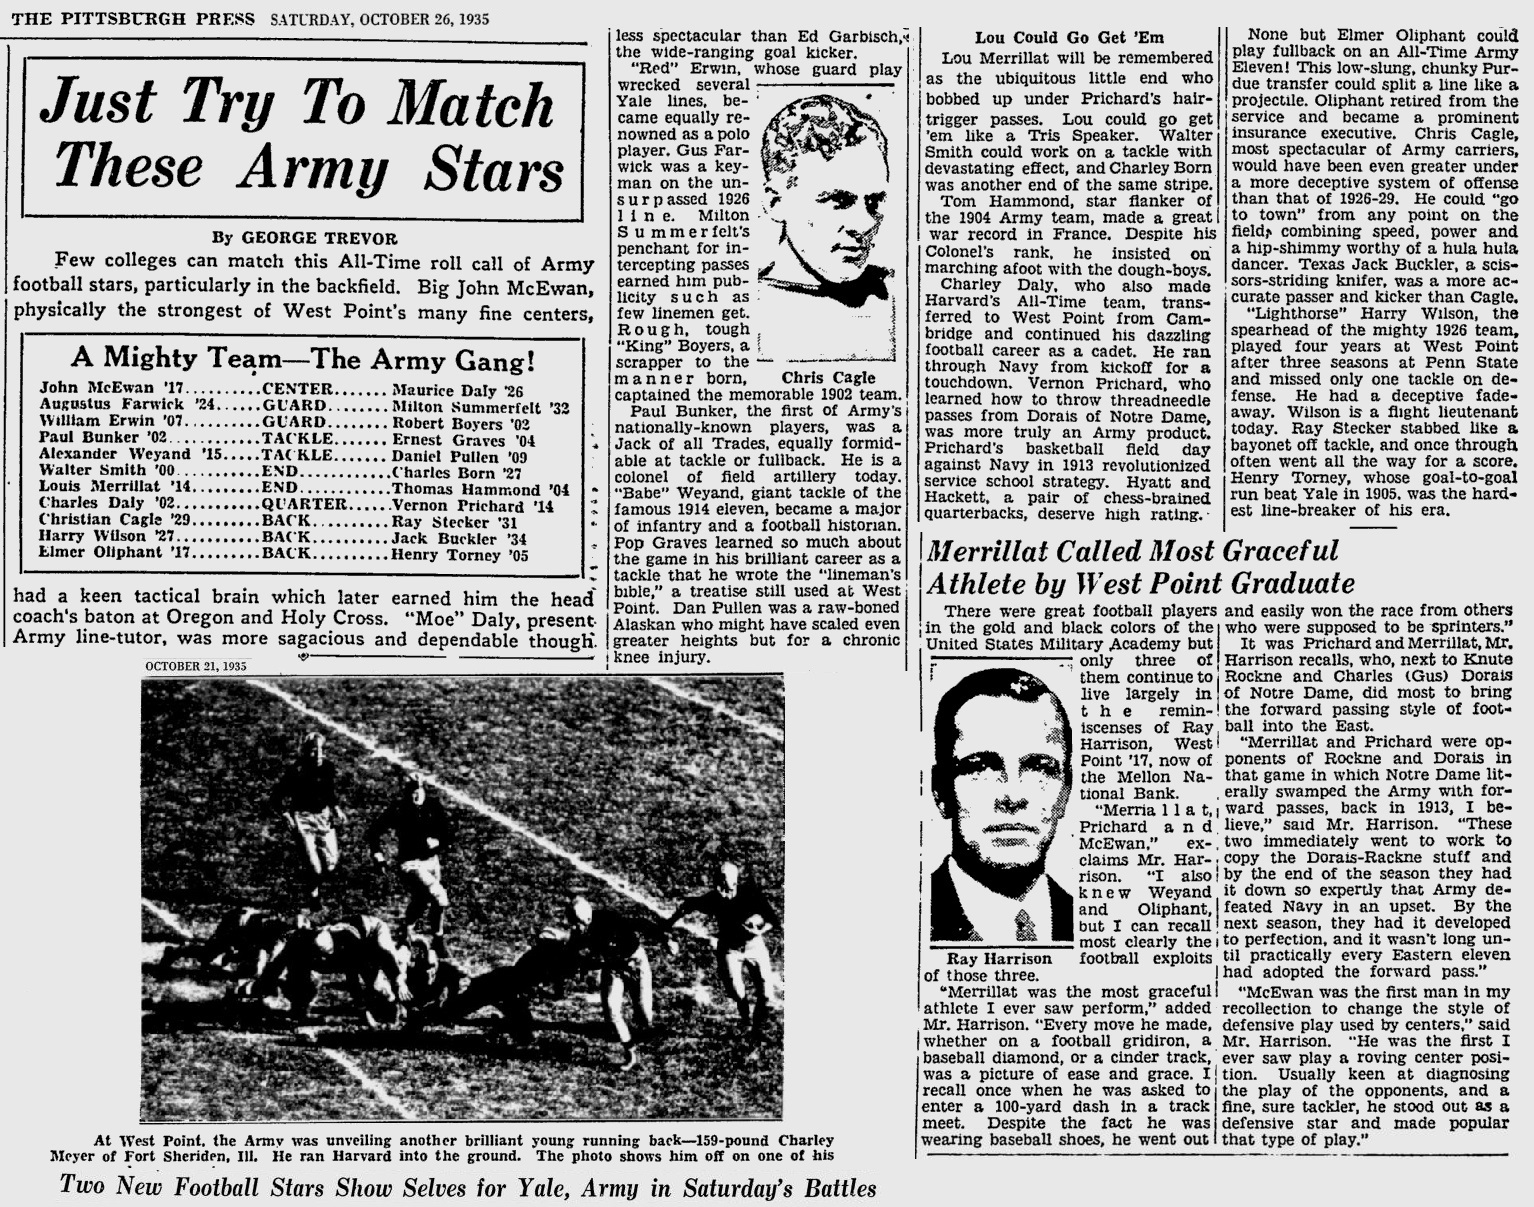 ArmyFB_1935_All-Time-Stars_PittsburghPress_Oct261935